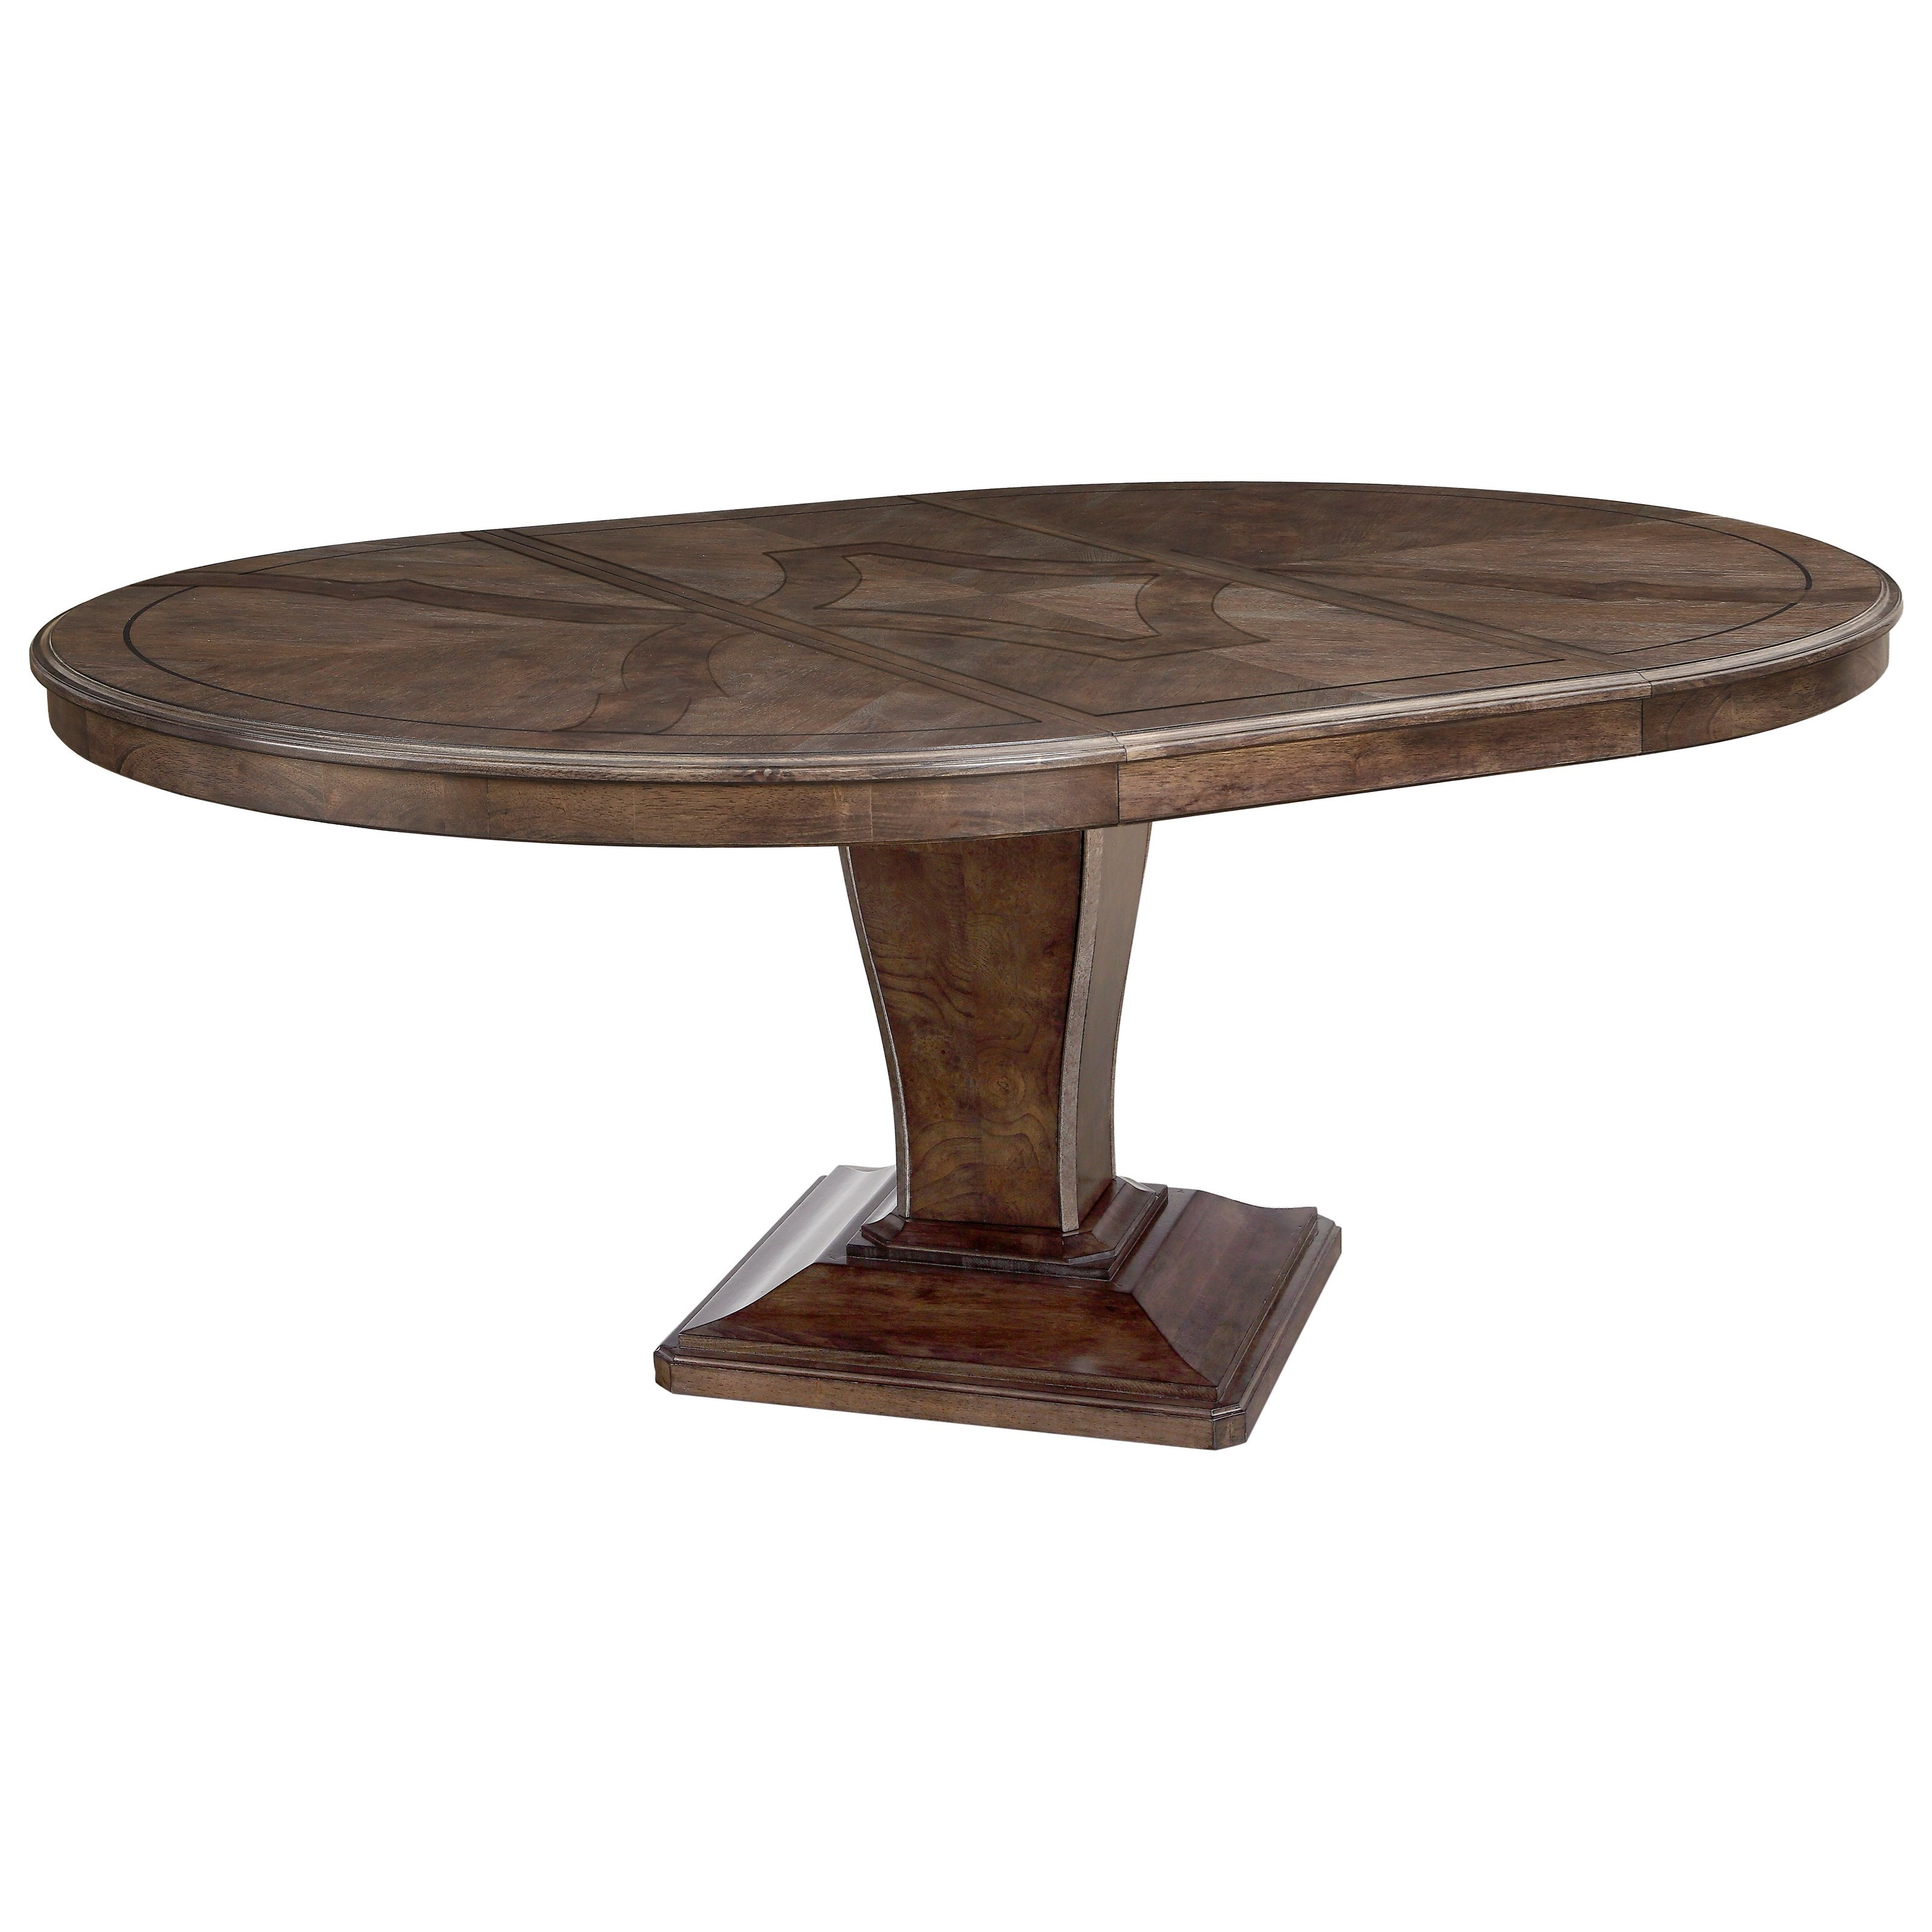 Landmark Round Dining Table by A.R.T. Furniture Inc at Home Collections Furniture